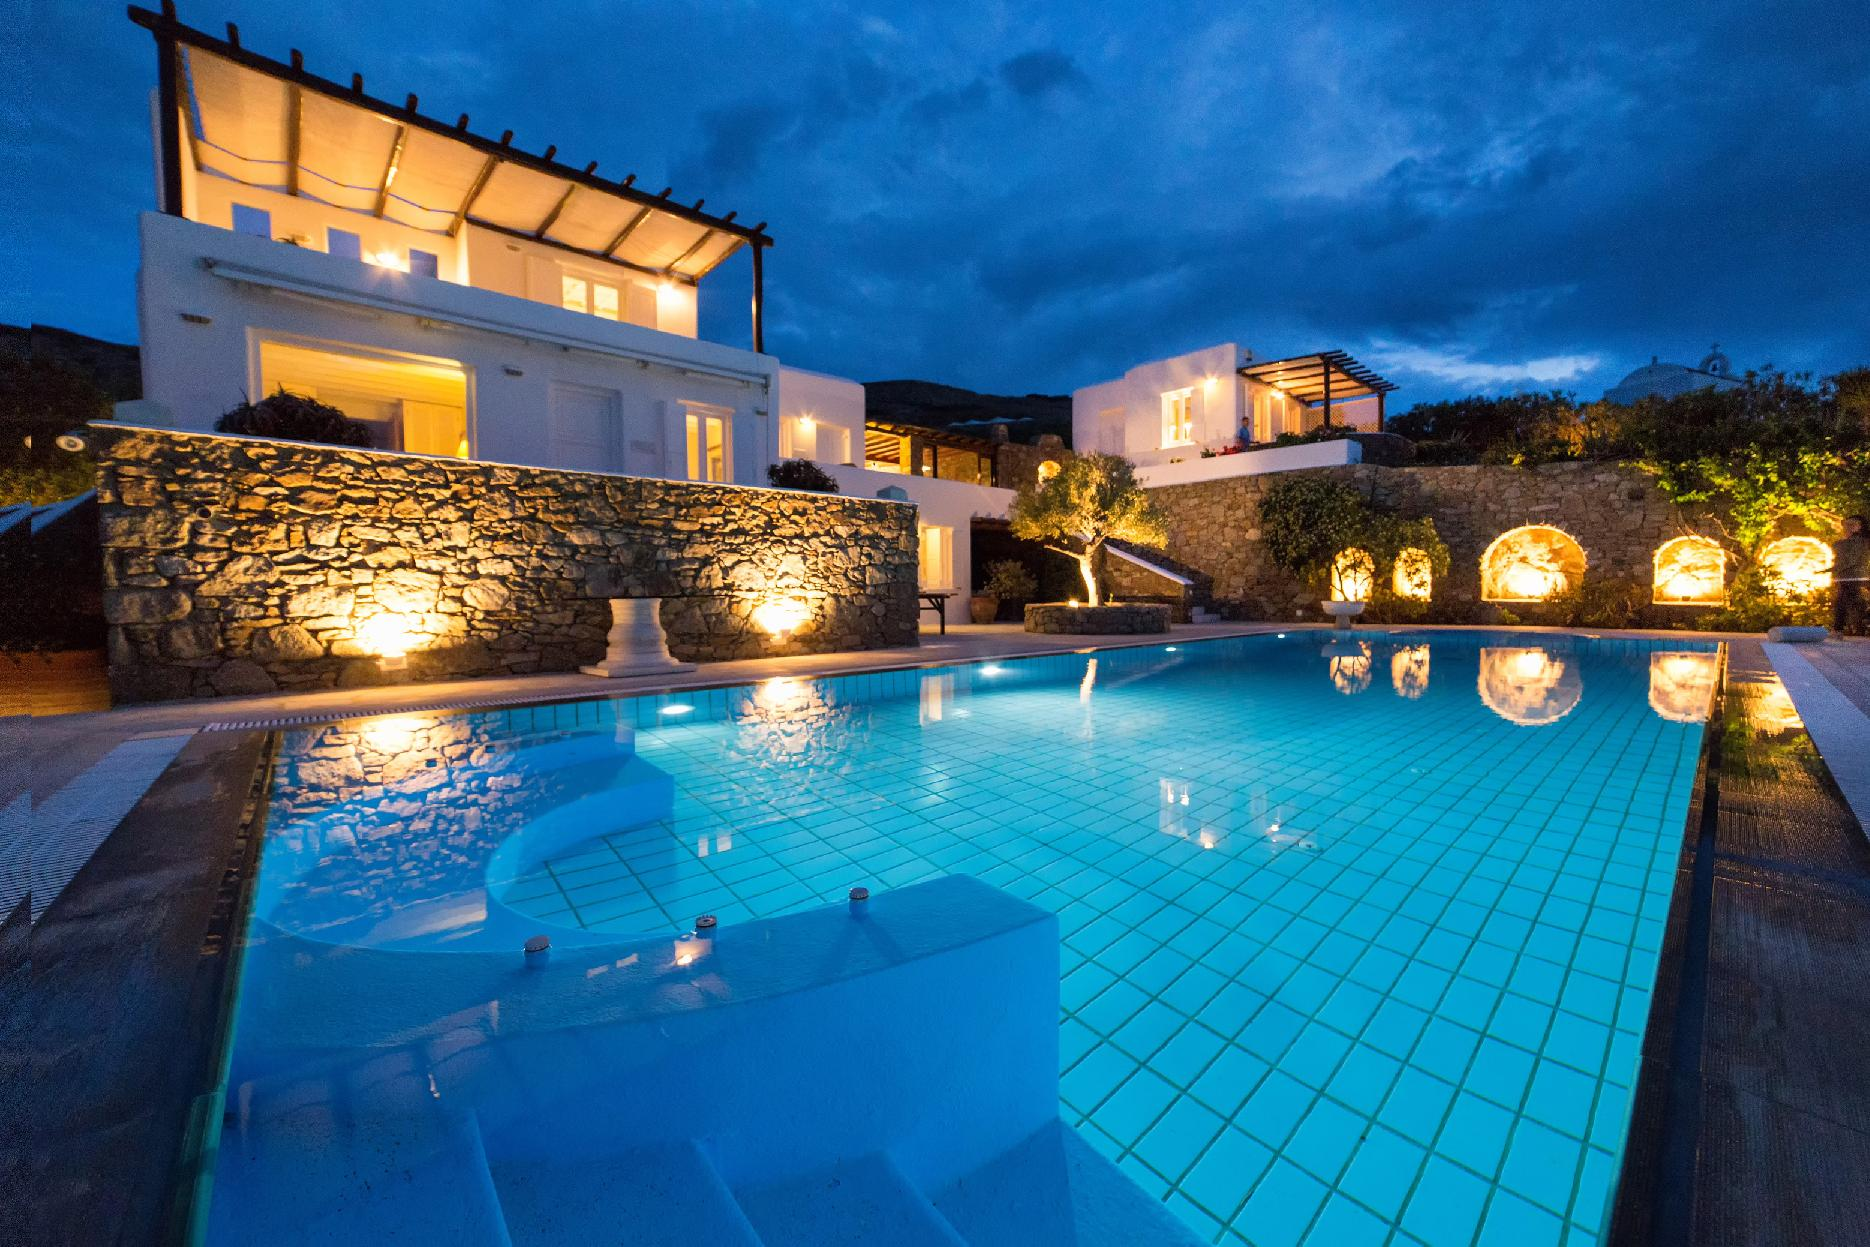 Apartment The Galaxy Mykonos villa with large pool and yoga platform photo 6005339